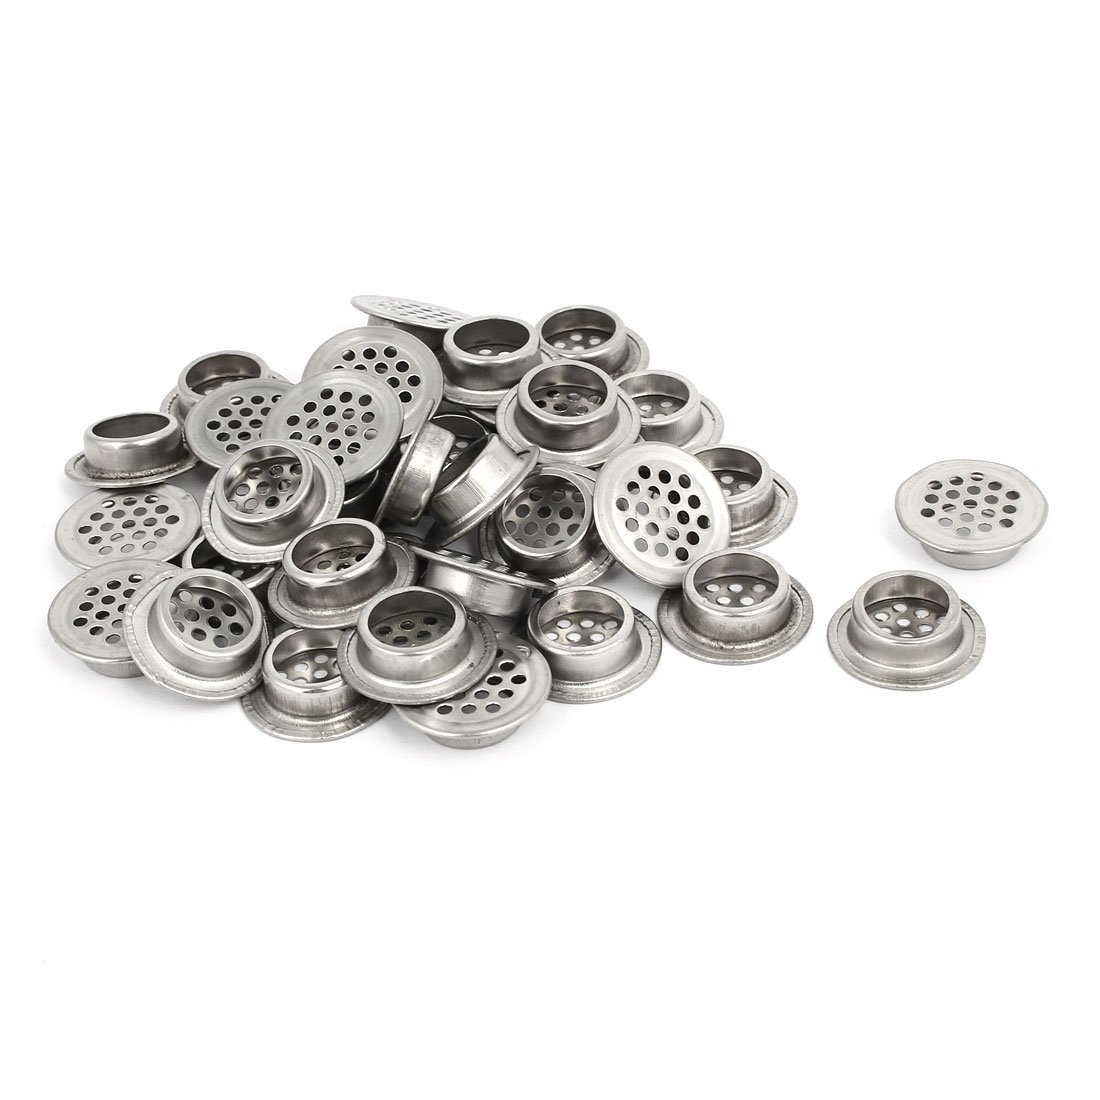 uxcell 19mm Bottom Dia Stainless Steel Round Shaped Mesh Hole Air Vent Louver 35pcs